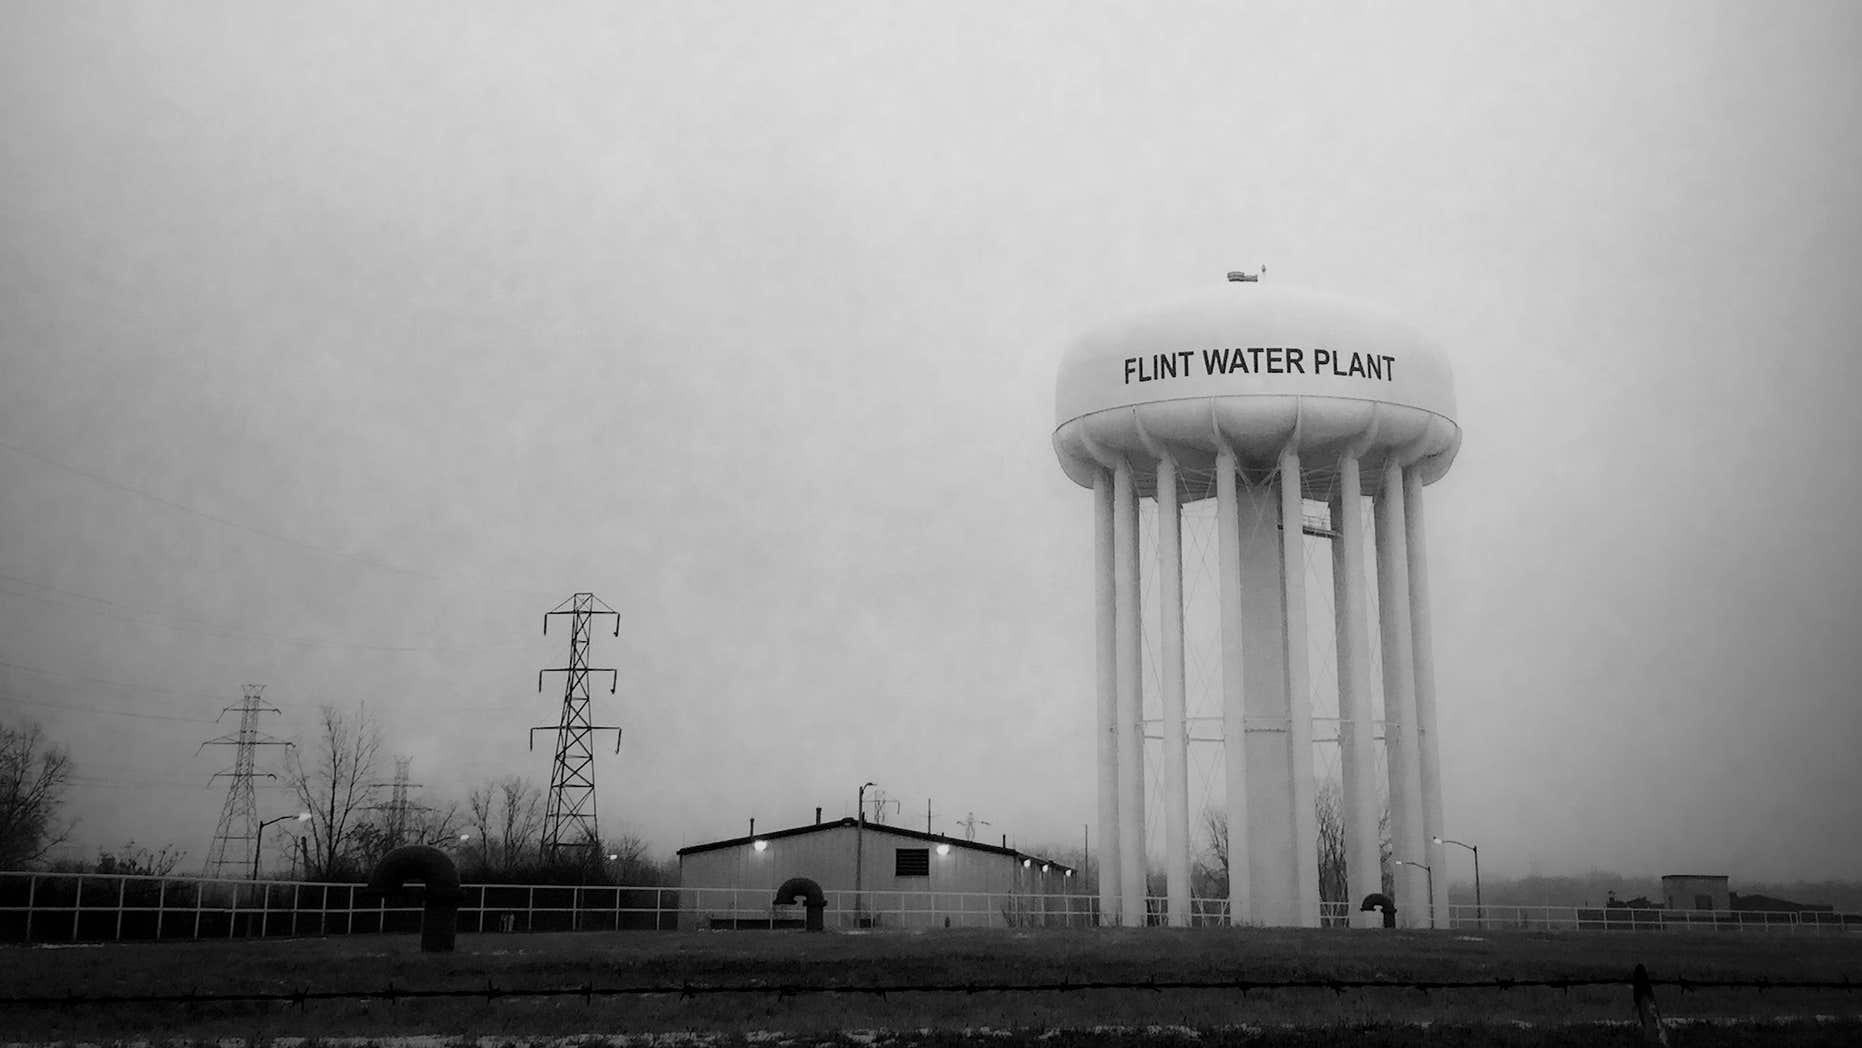 This Jan. 21, 2016 photo shows the water tower at the Flint, Mich., water plant.